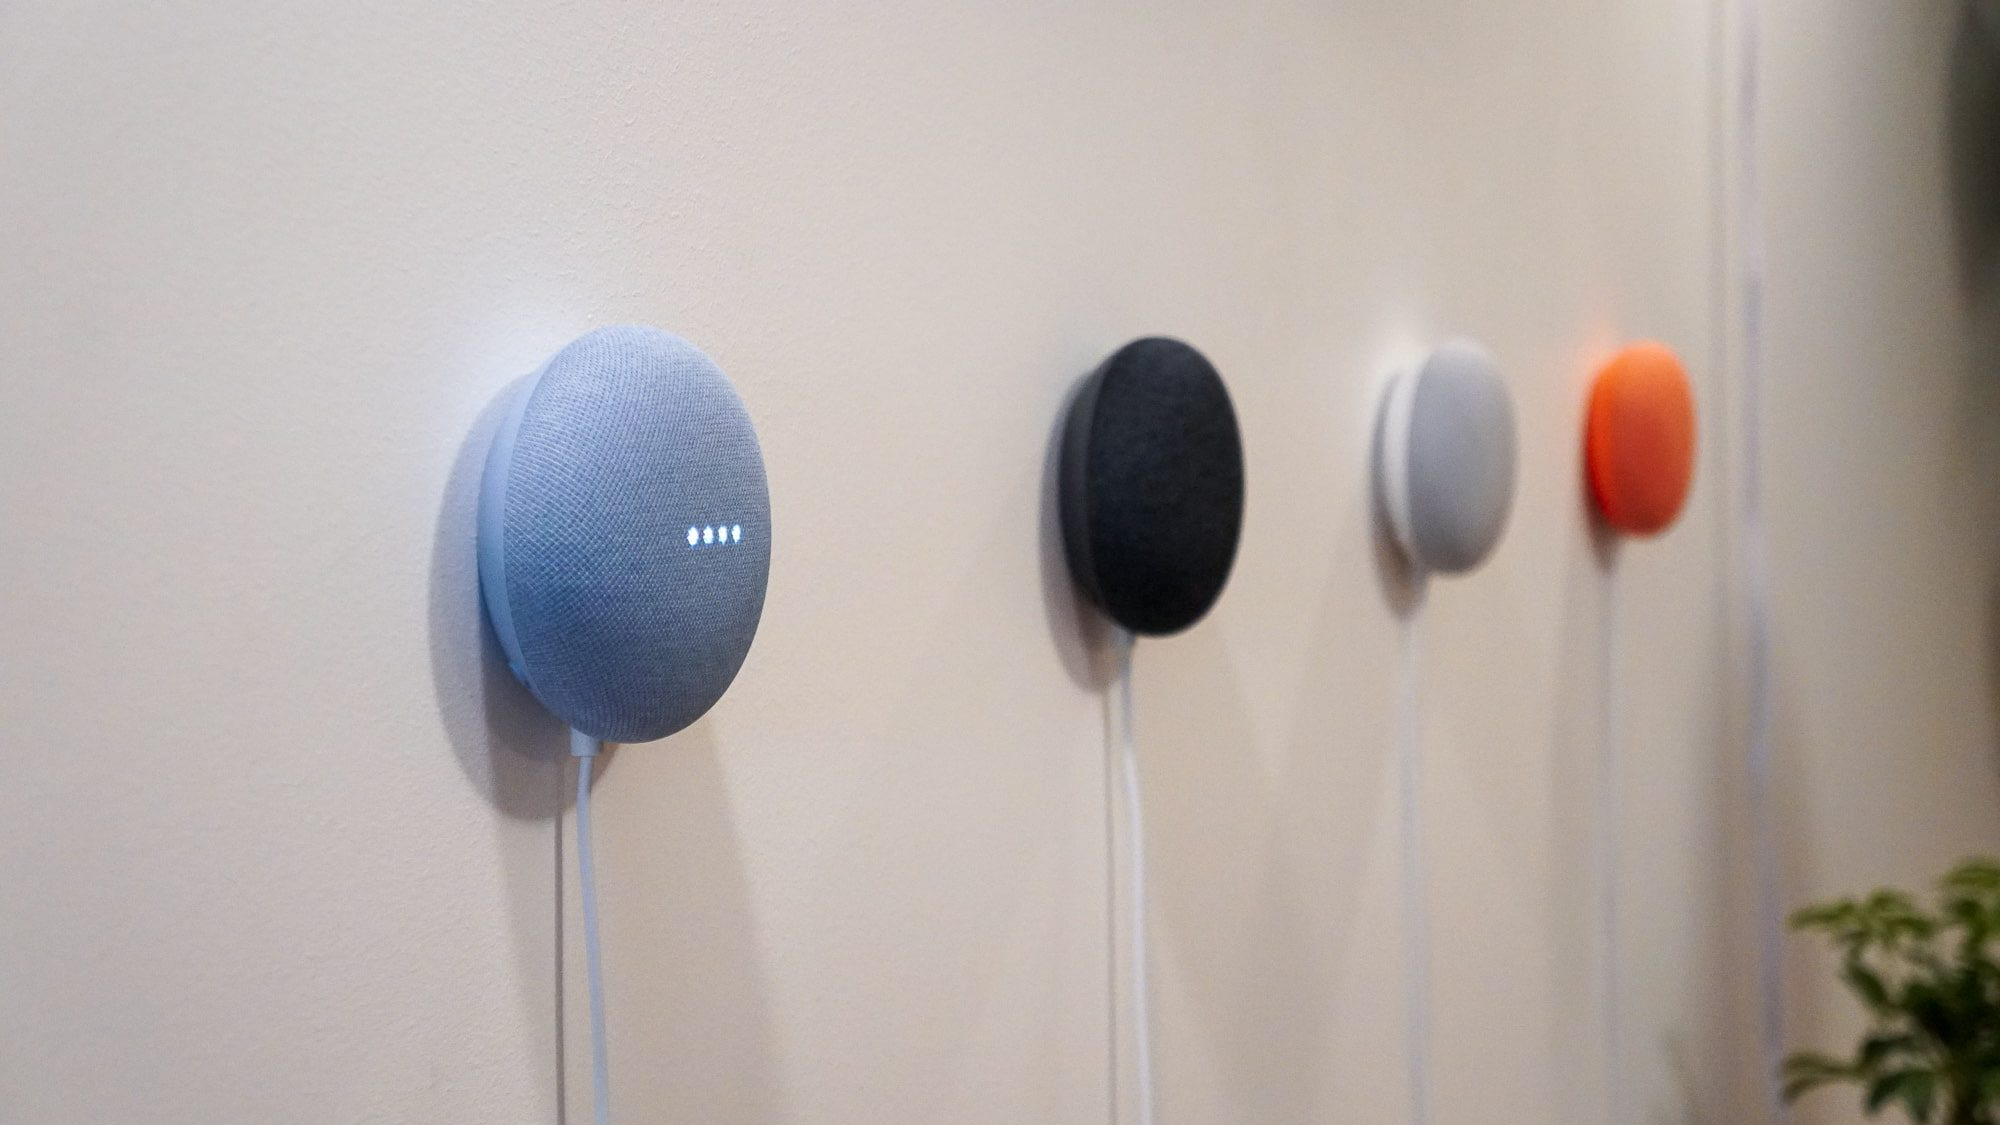 Nest Wi-Fi and Nest Mini: Small changes make all the difference